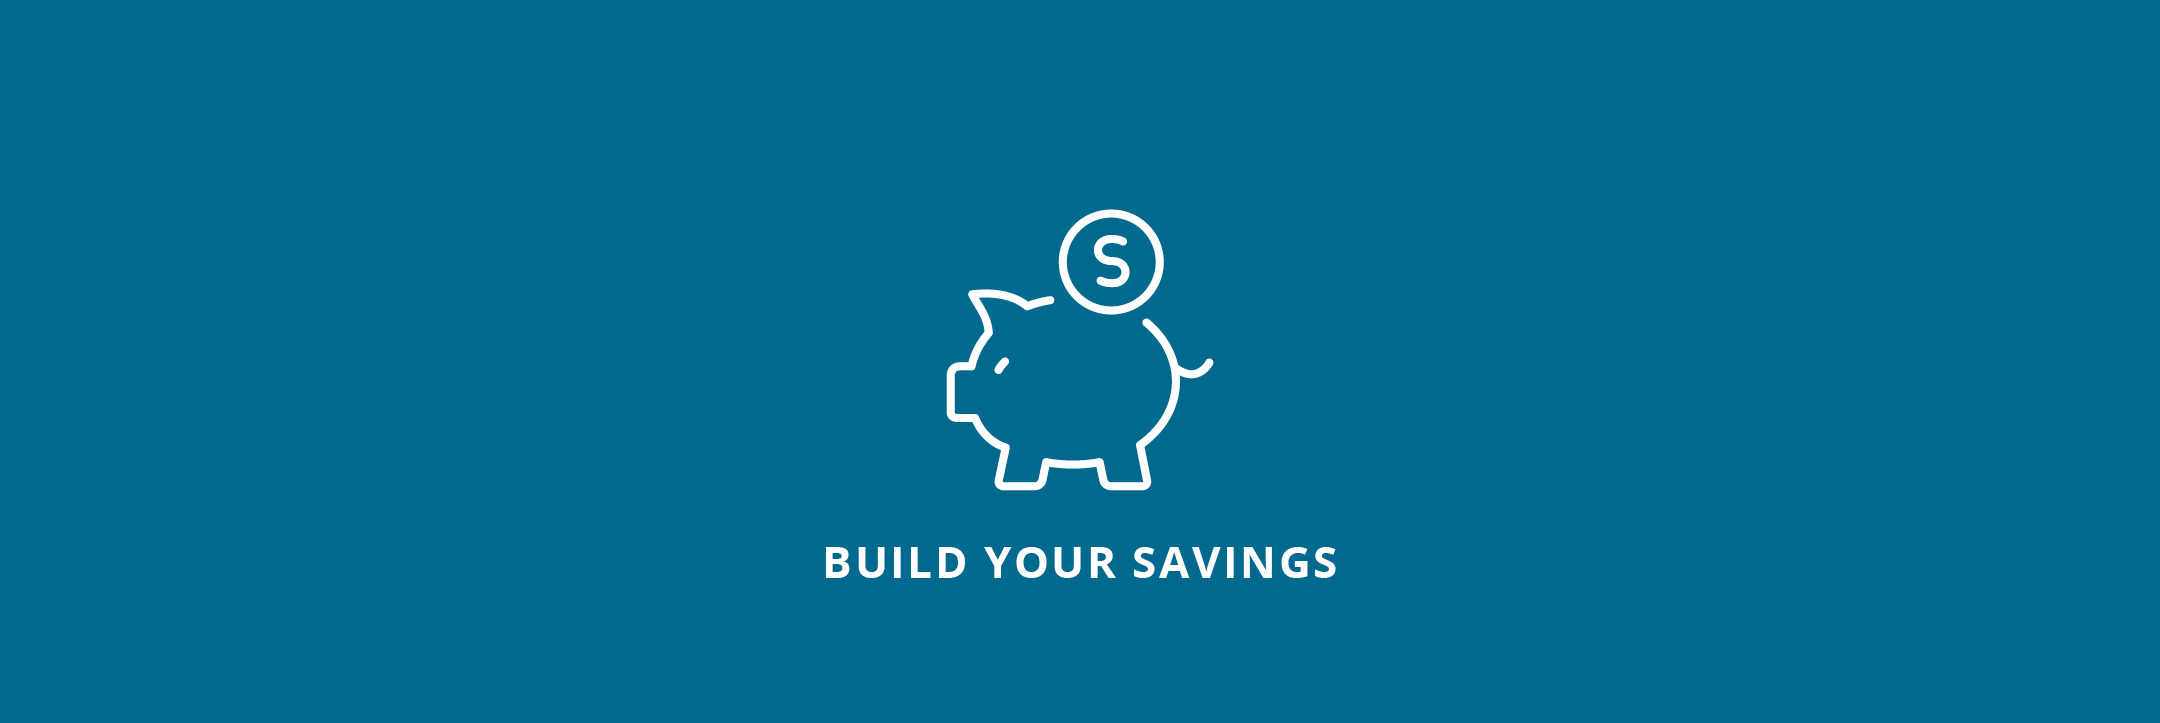 Build Your Savings